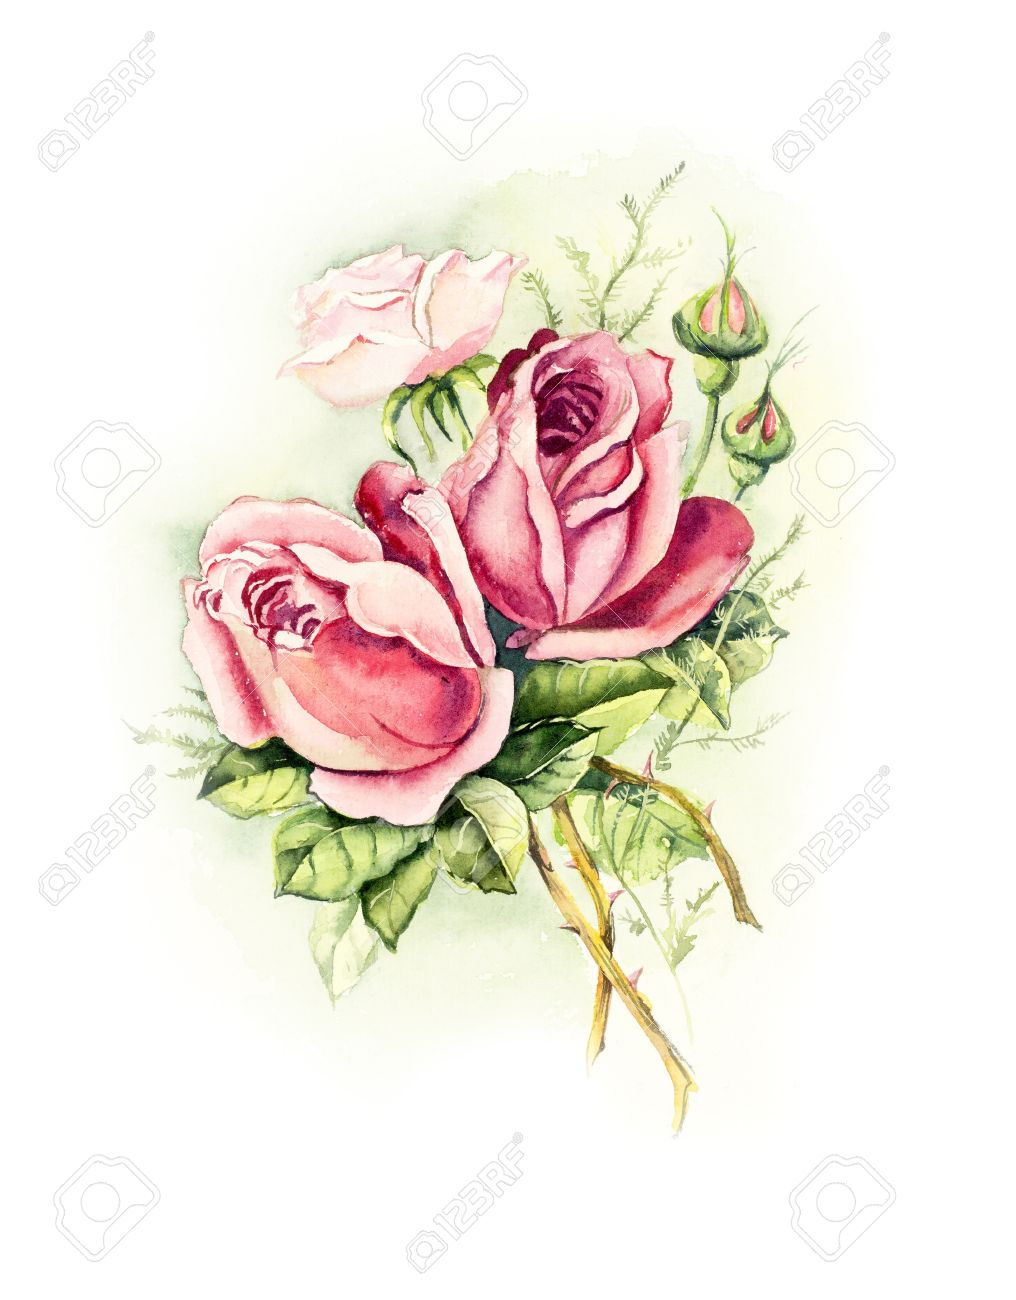 Vintage card pink rose wedding drawings watercolor painting wedding drawings watercolor painting greeting cards rose m4hsunfo